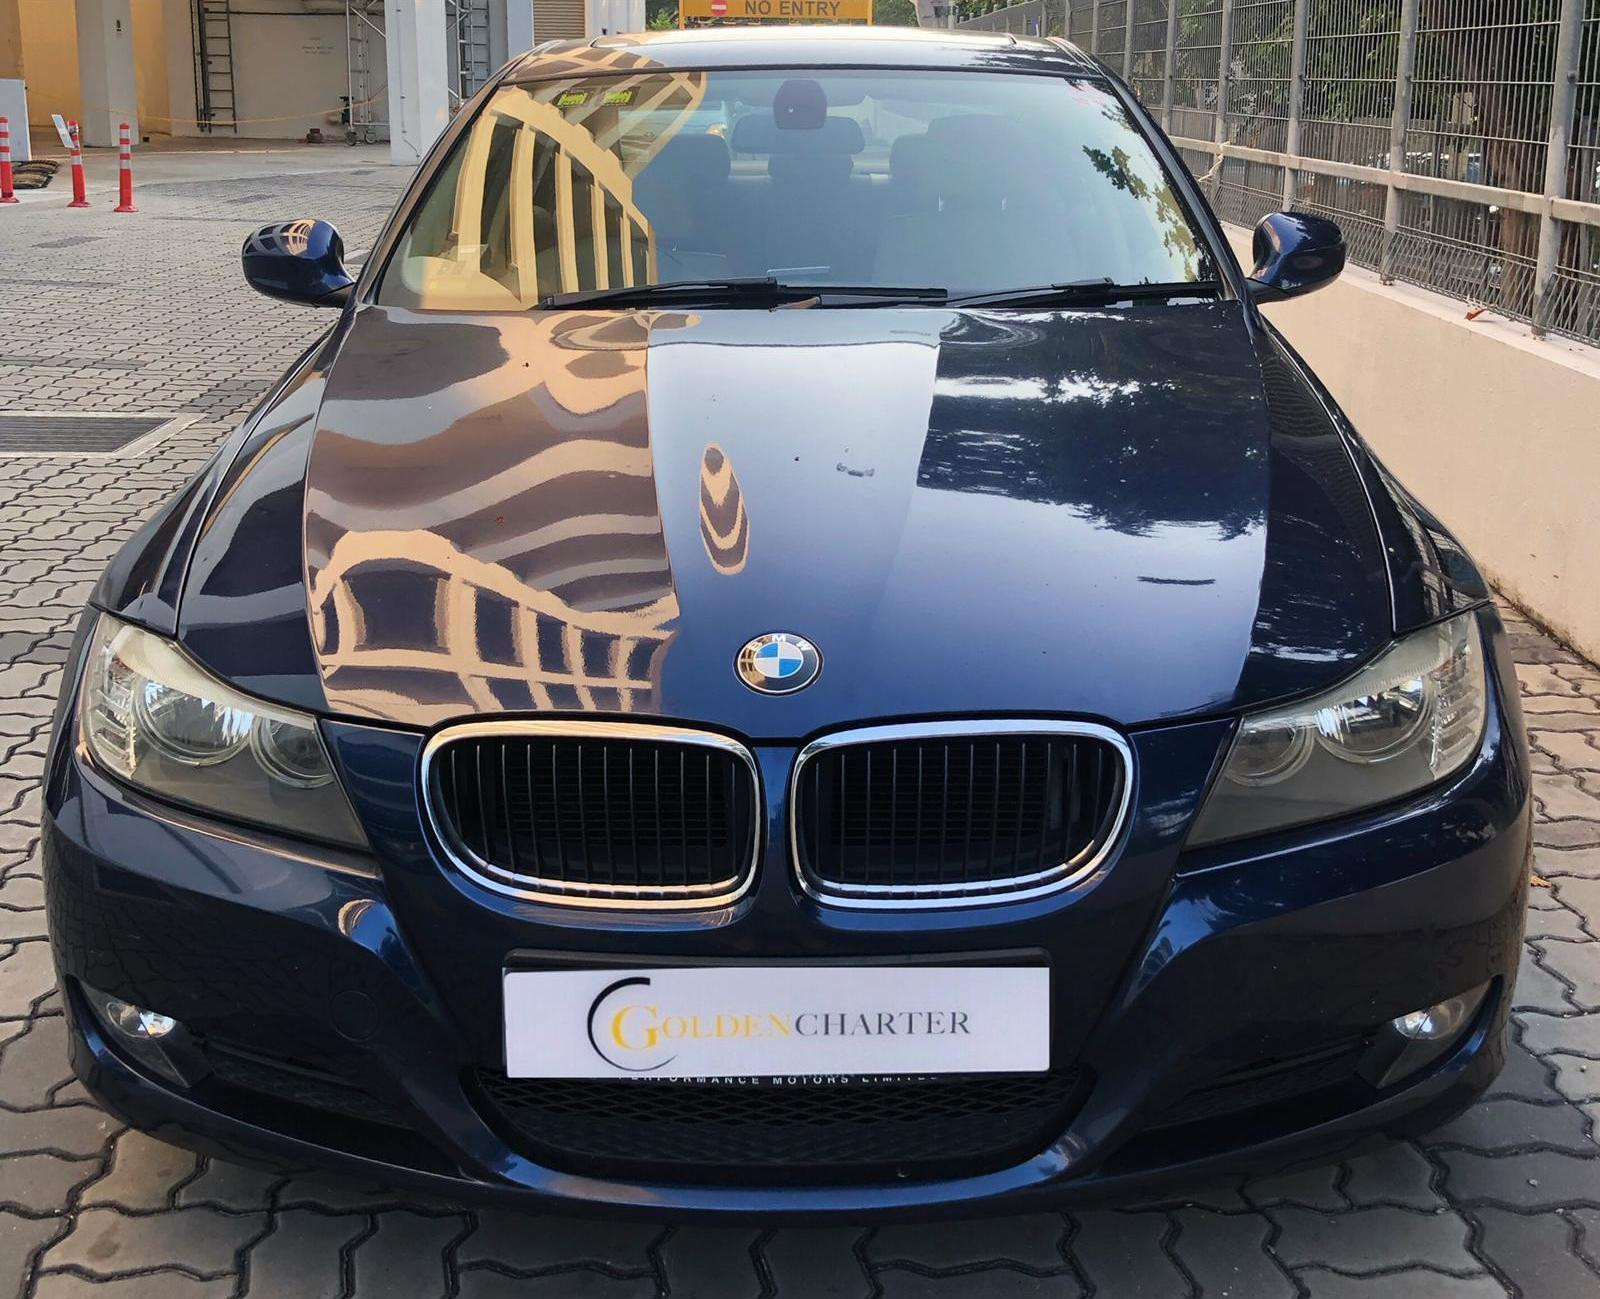 BMW 318I CHEAPEST Car Rental for Grab Gojek or Personal use